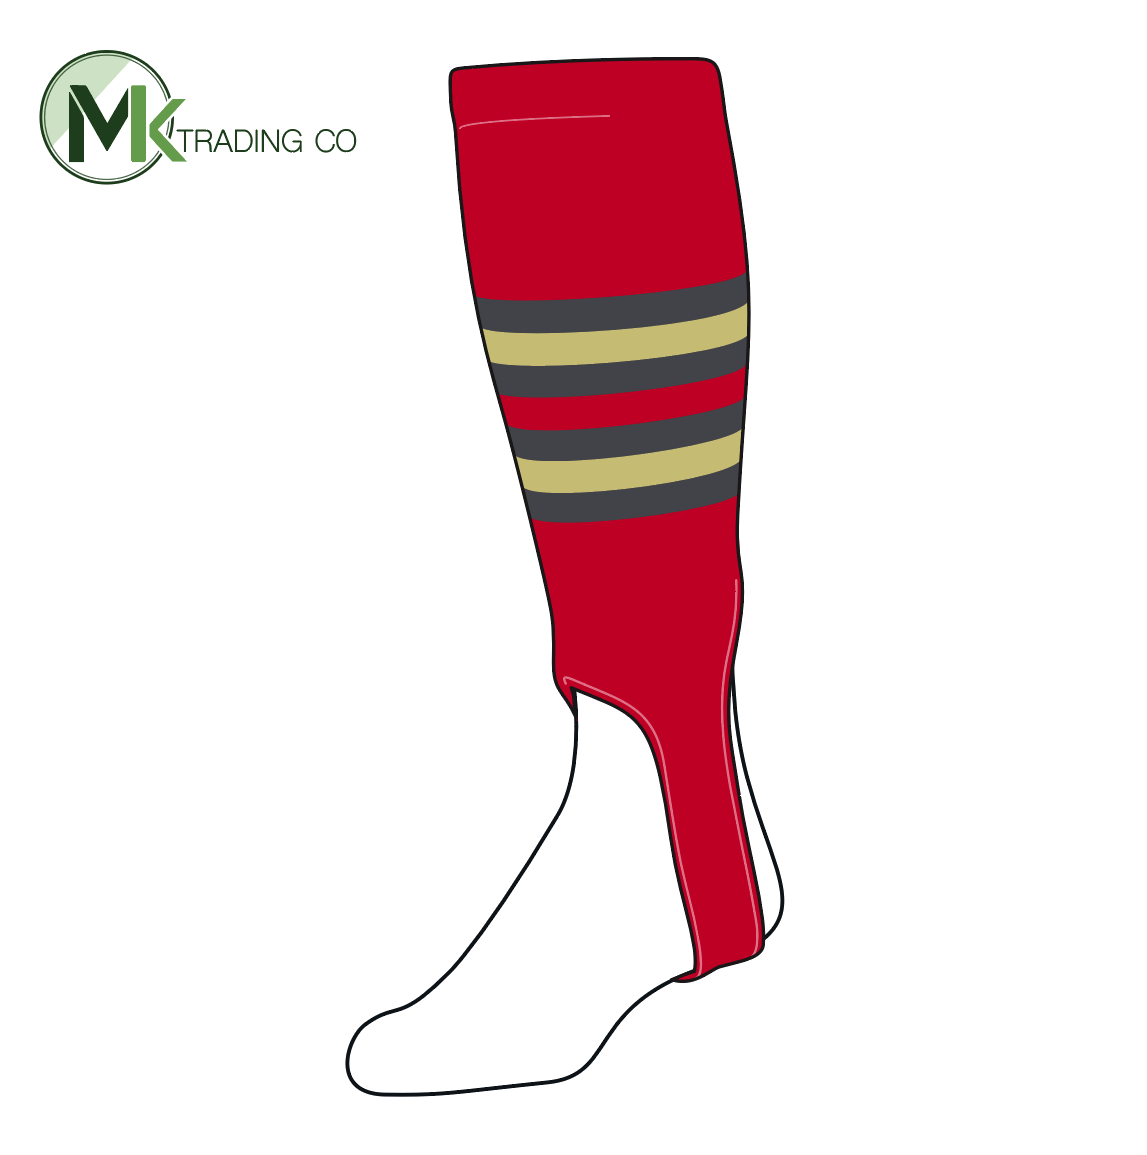 TCK Baseball Stirrups Medium (200I, 5in) Red, Graphite, Vegas Gold